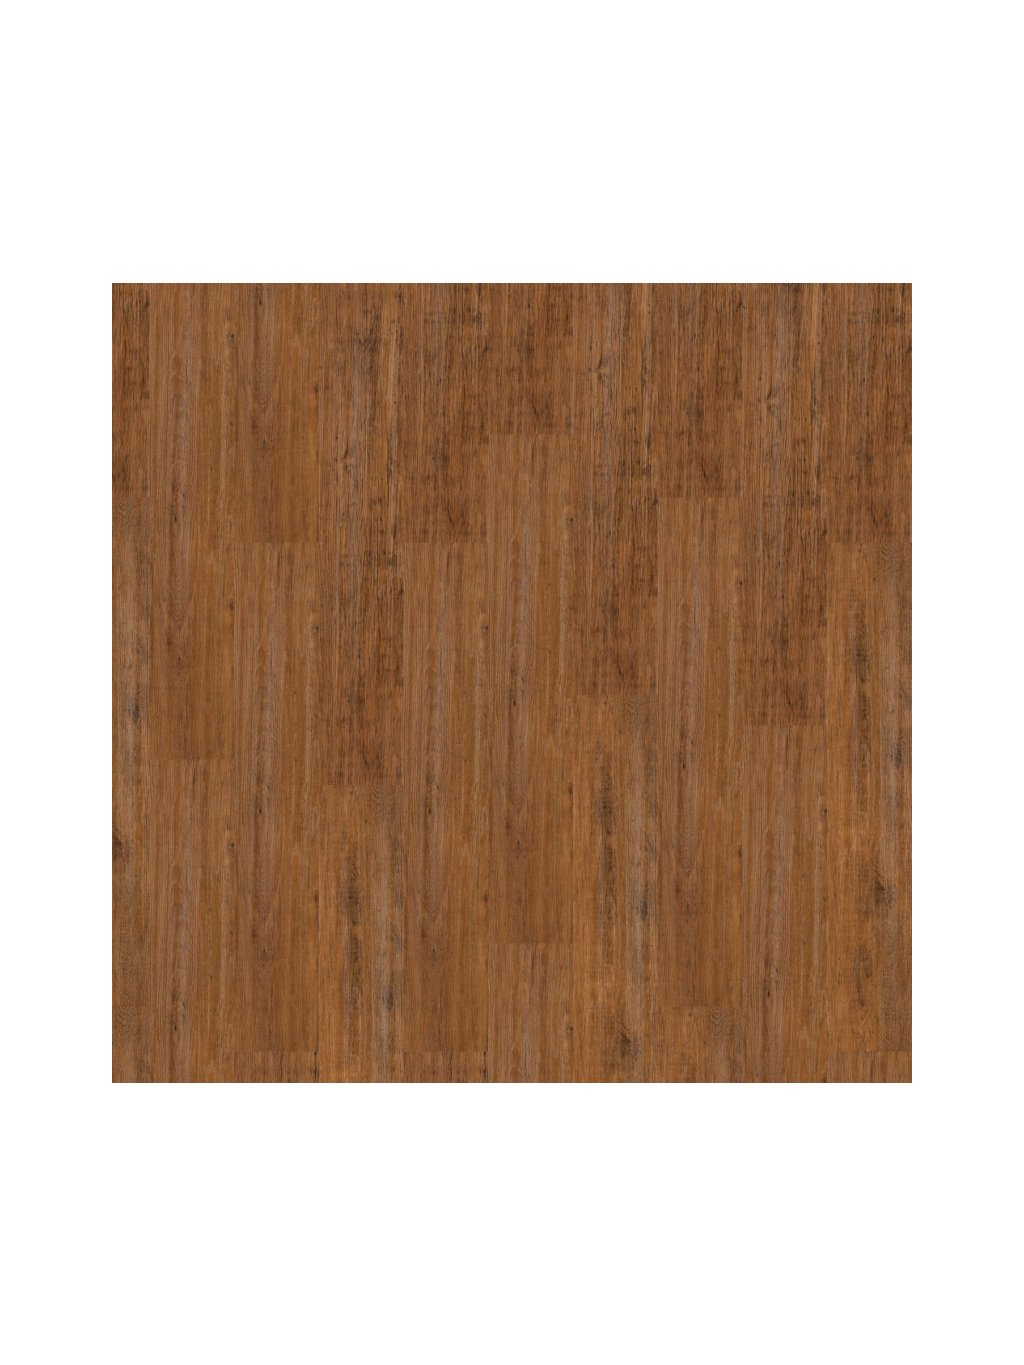 vinylova podlaha expona commercial 4016 antique oak